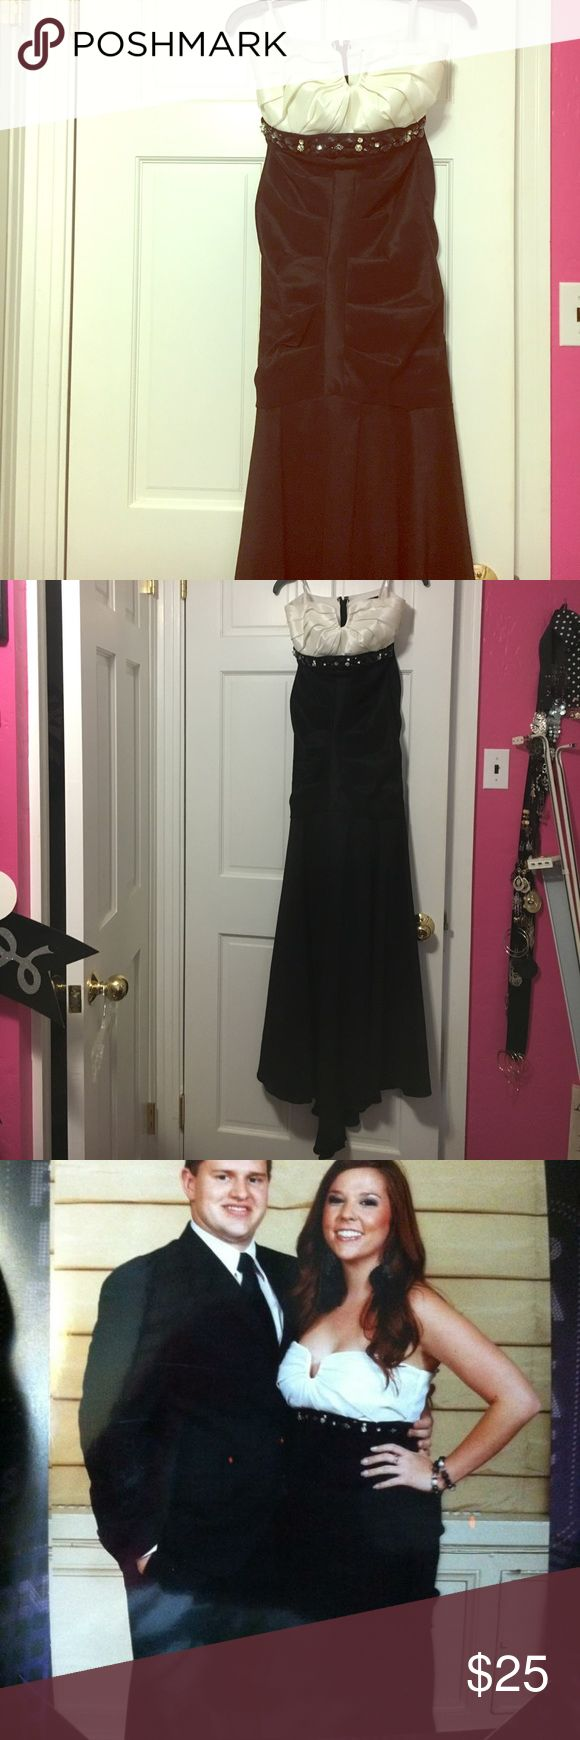 Black and white size 9 formal gown Floor length tight fitting formal gown size 9. Only worn once for a few hours at a work event. In great condition. Back has a bit of a train. Skirt is fitted and puckered until about knee length and then flows. Jewel embroidery around waist. Off white top that shows a lot of cleavage. City Studio Dresses Prom